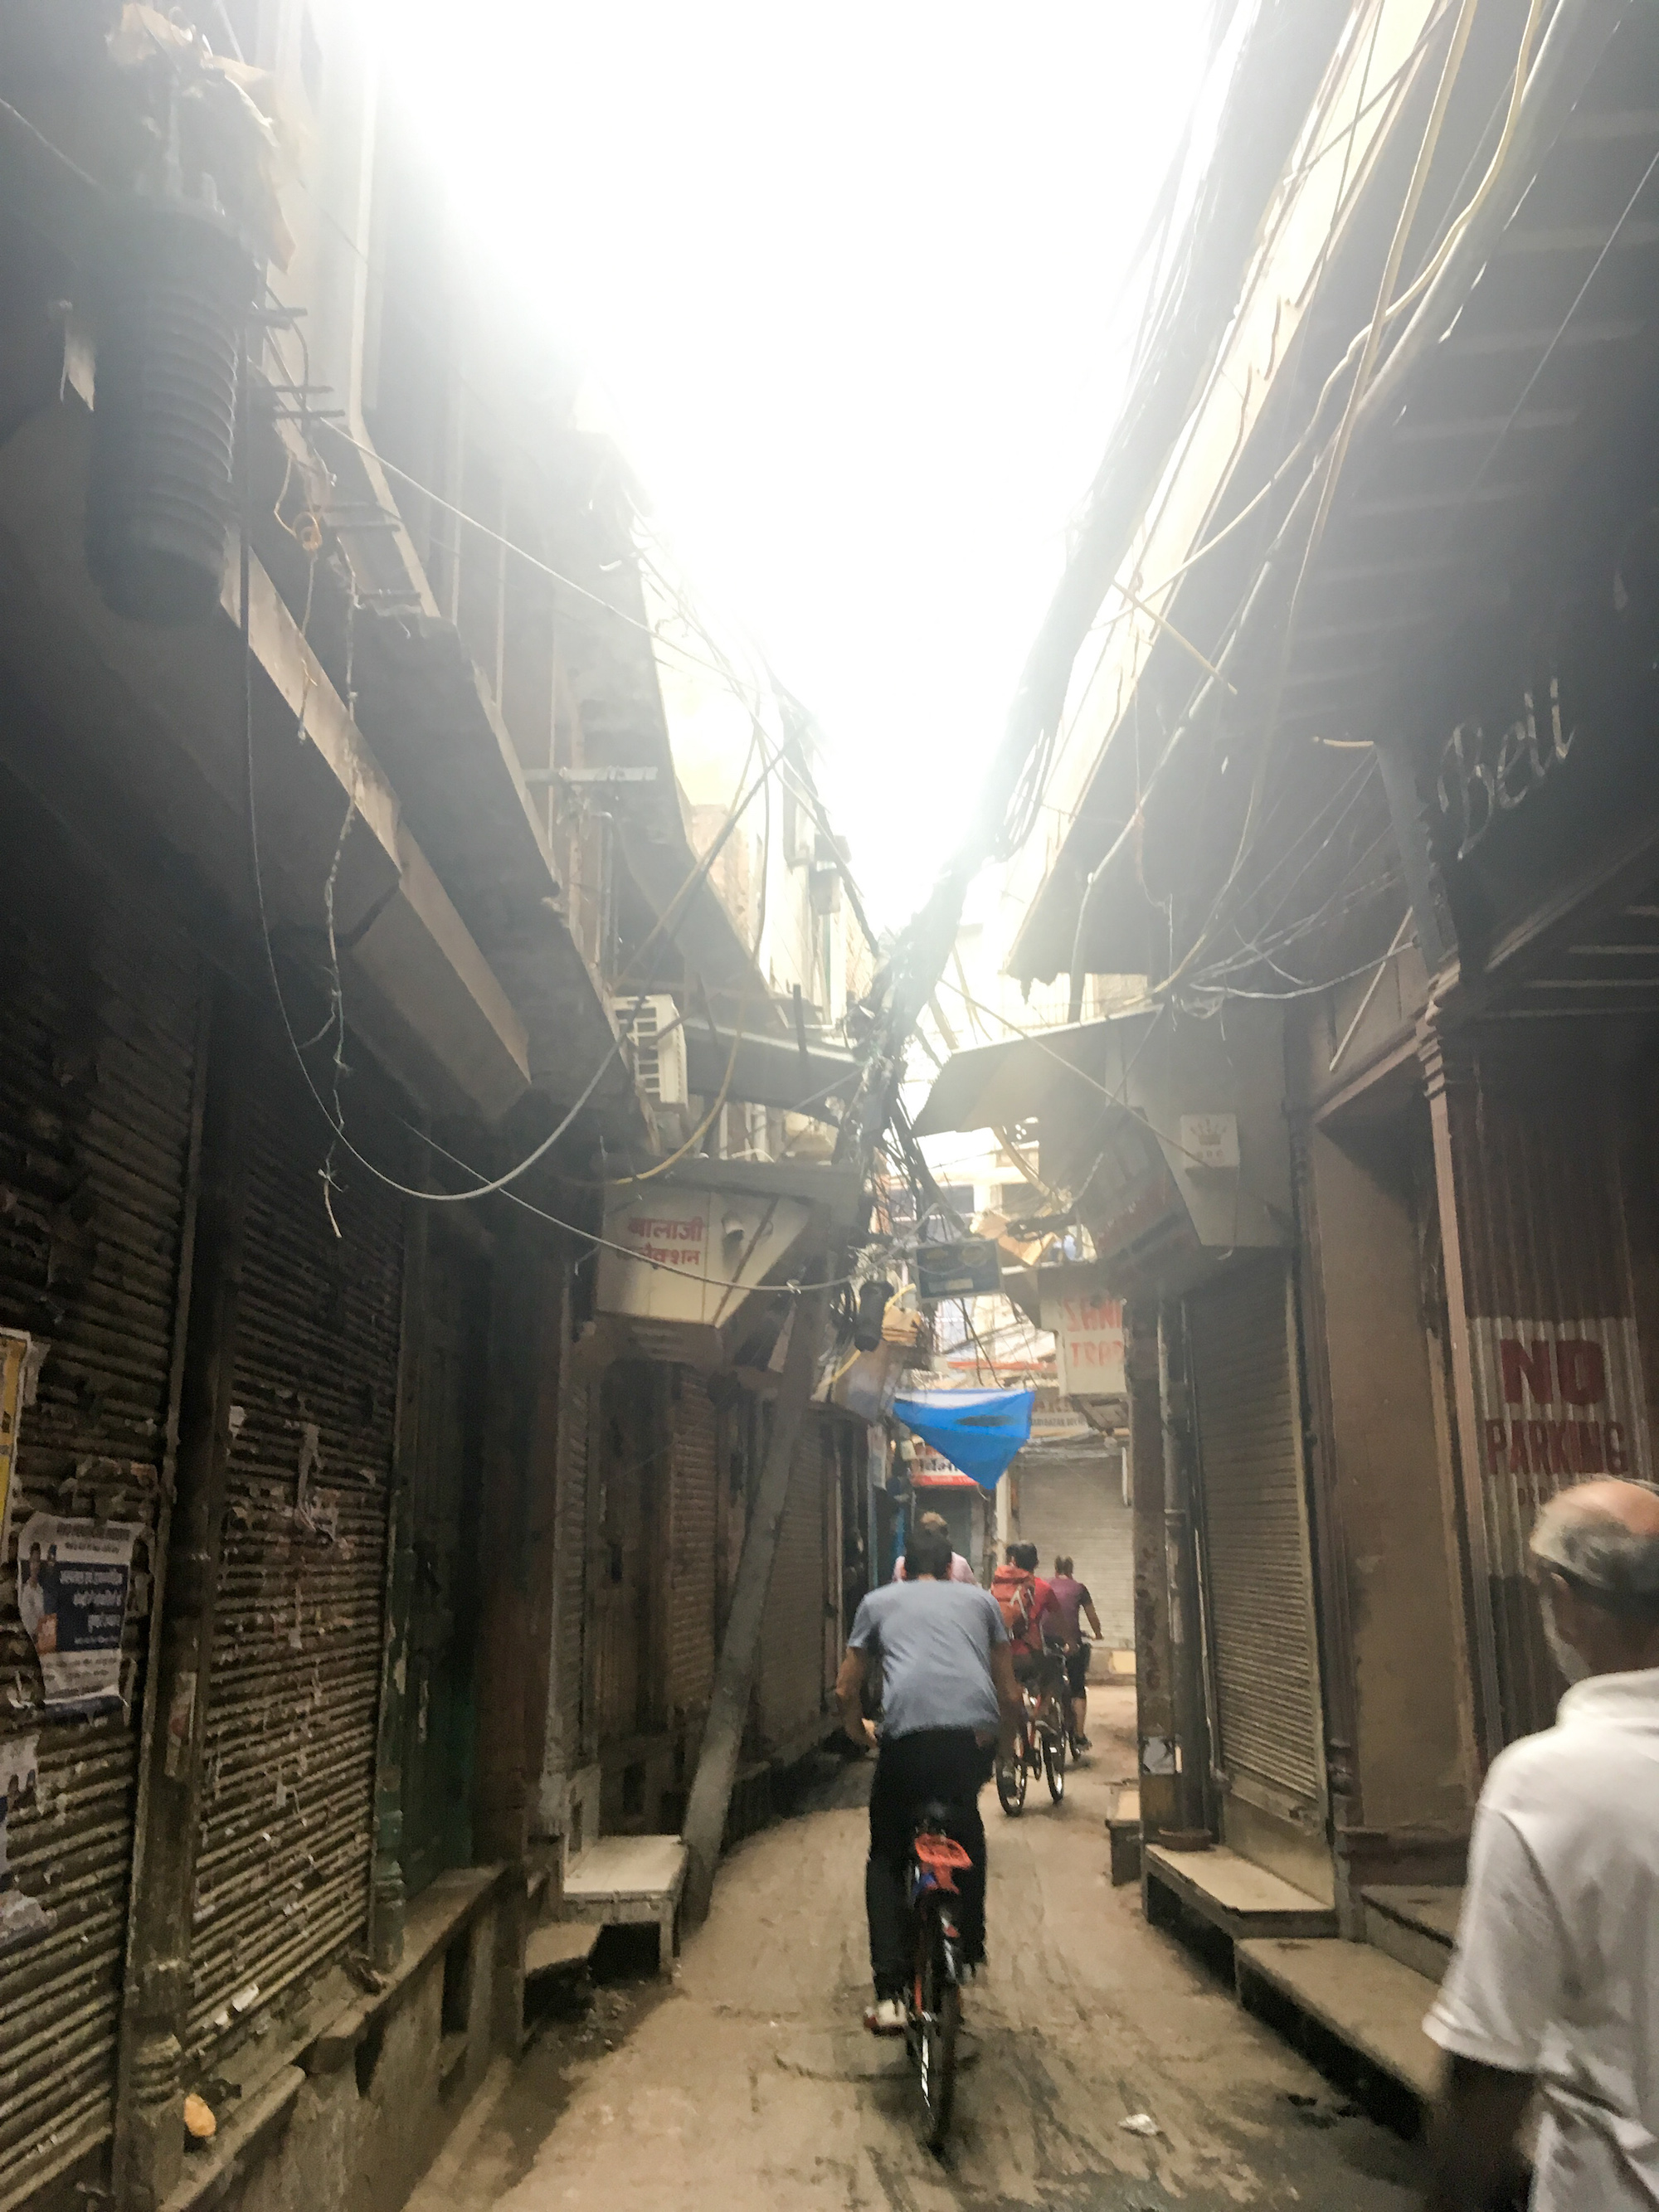 Cycling through the streets of  Chandni Chowk - one of the oldest and busiest markets of Delhi